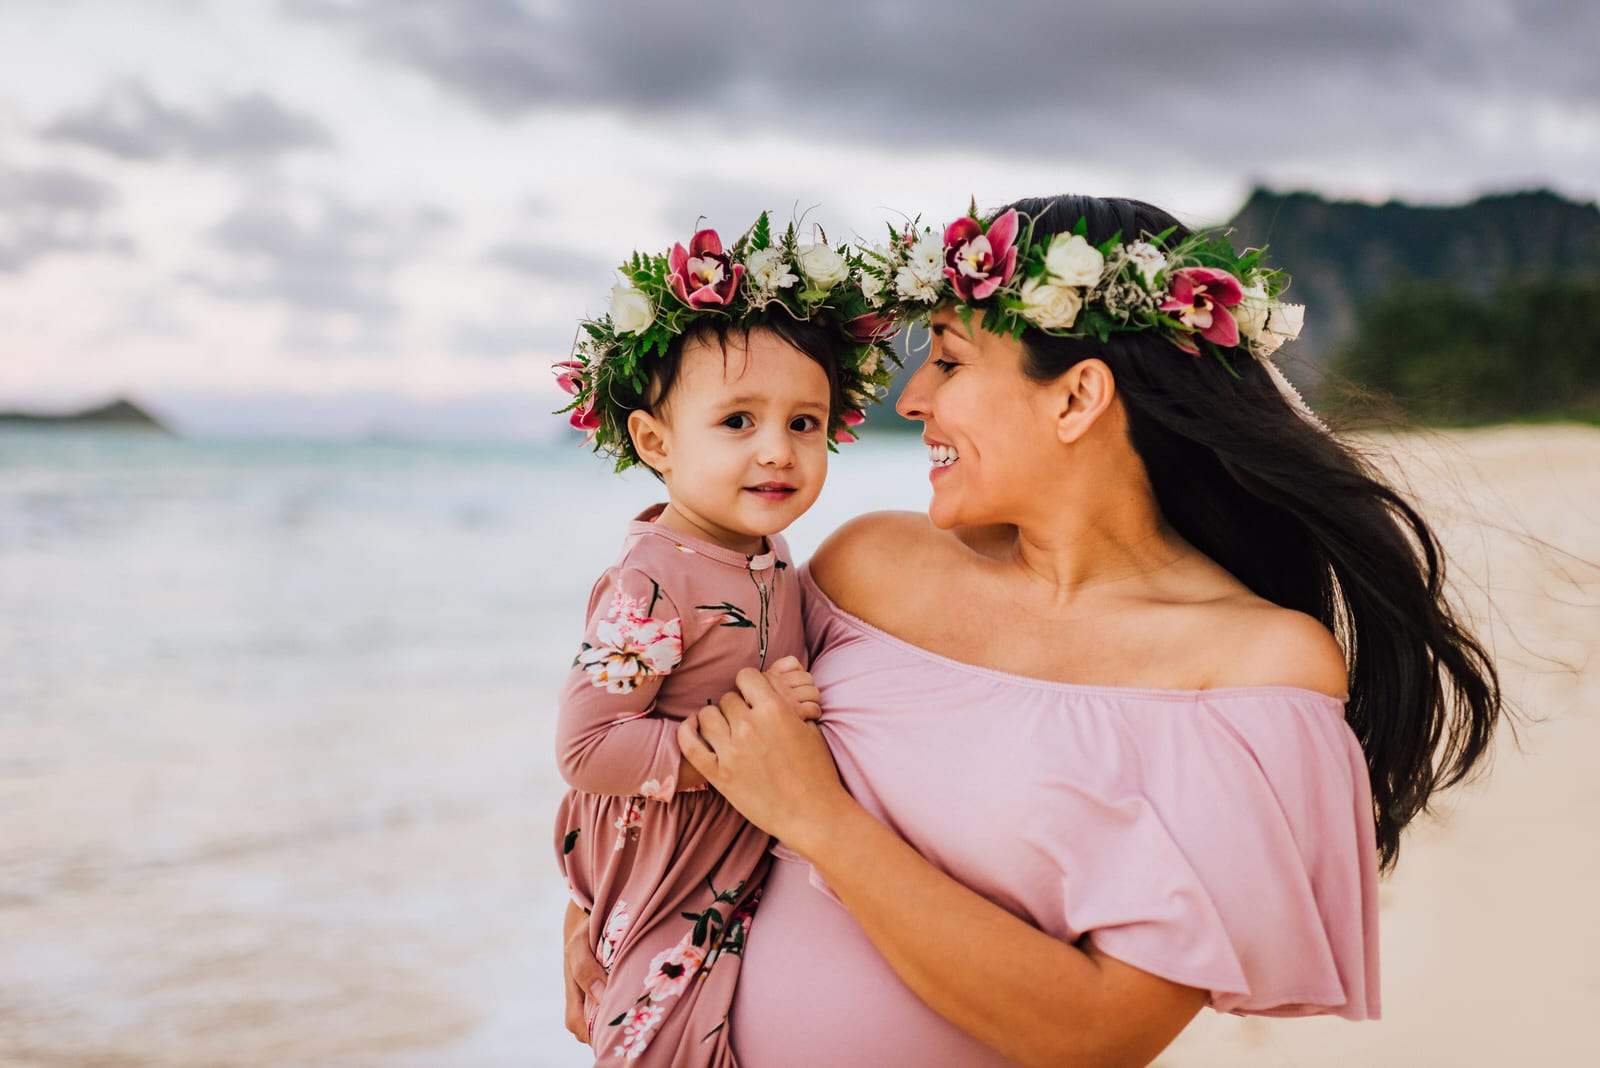 Oahu-Maternity-Photographer-Love-Haku-Flower-Crown-Water-22.jpg